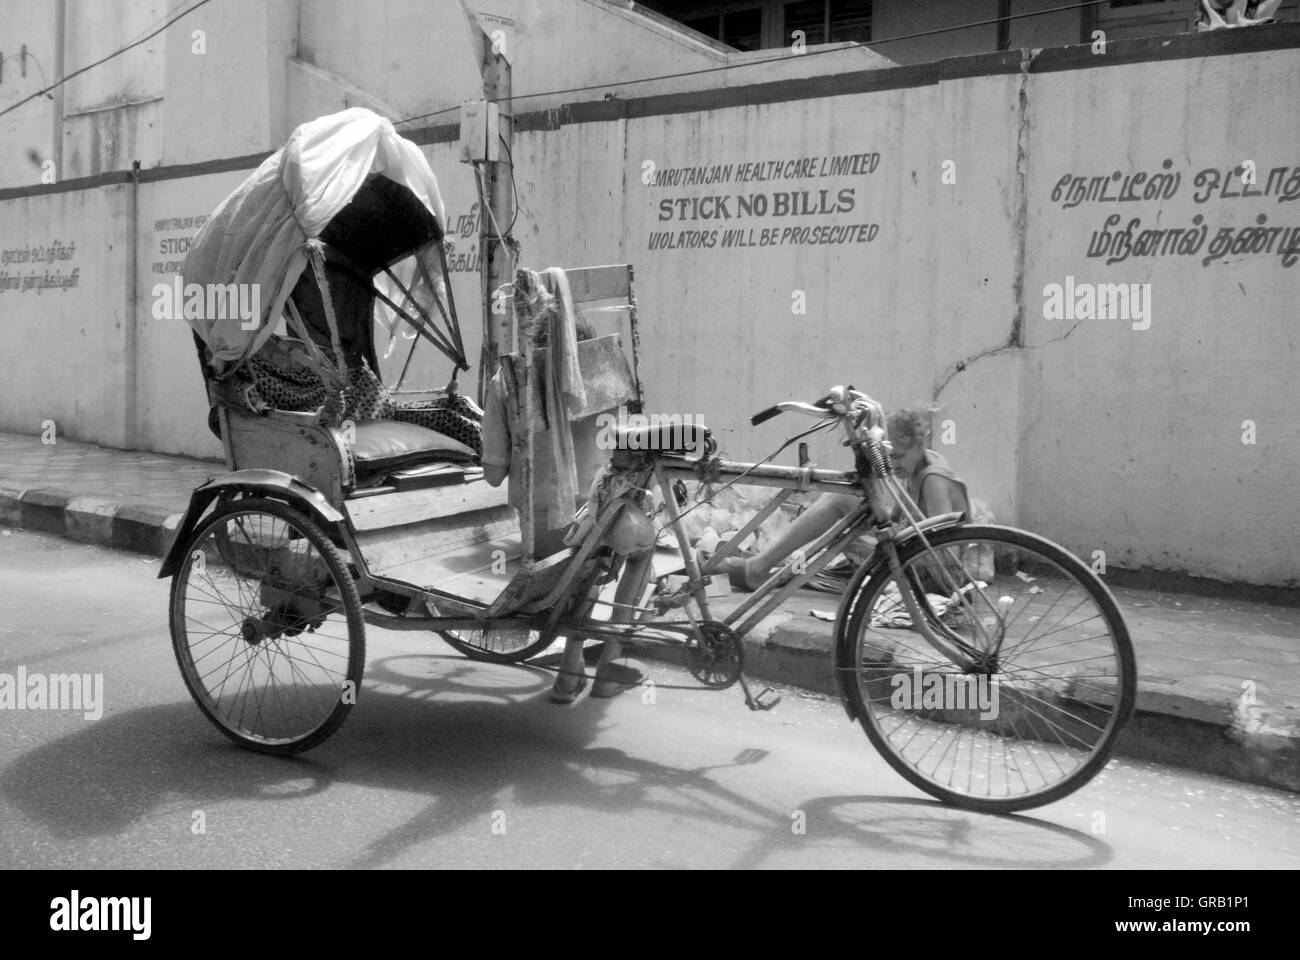 Tricycle Parked On Street Against Building During Sunny Day - Stock Image